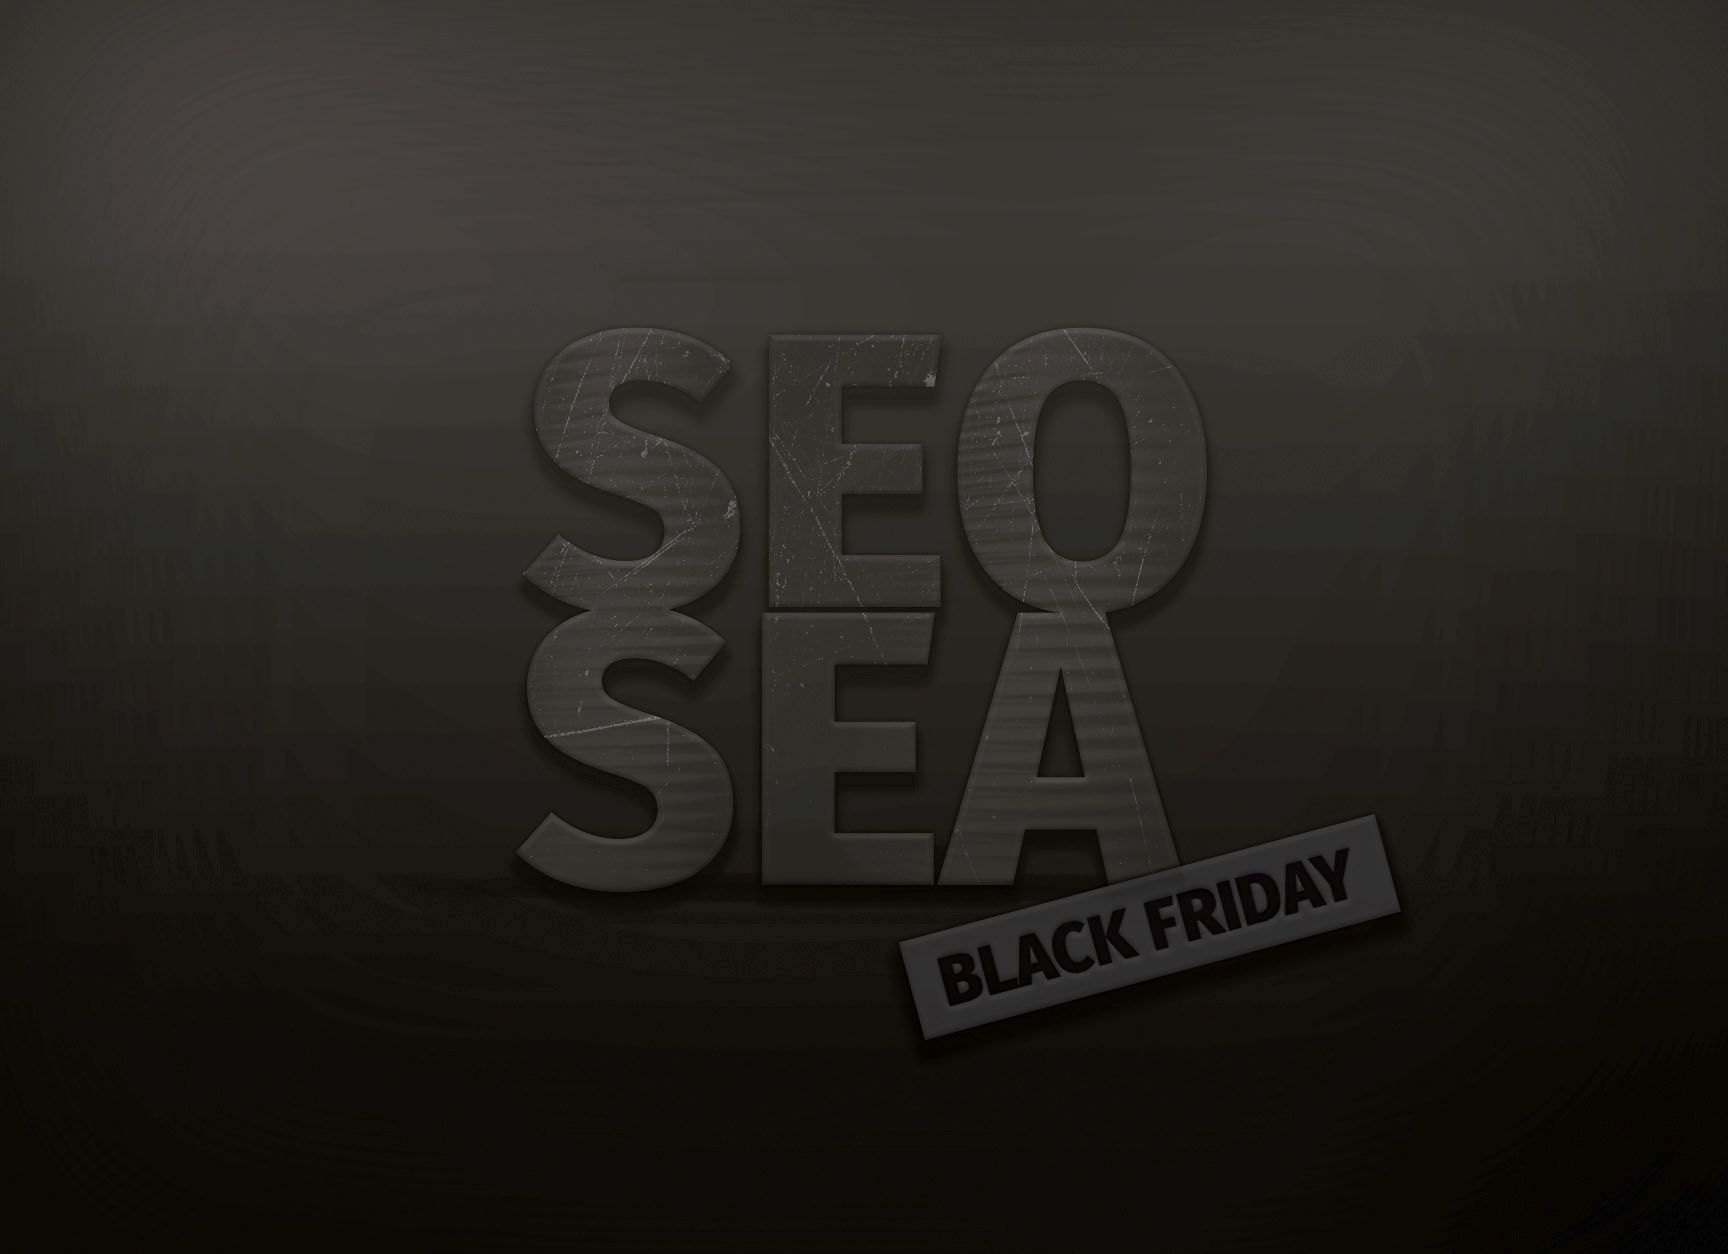 Als SEO-Star die Black Friday Performance steigern